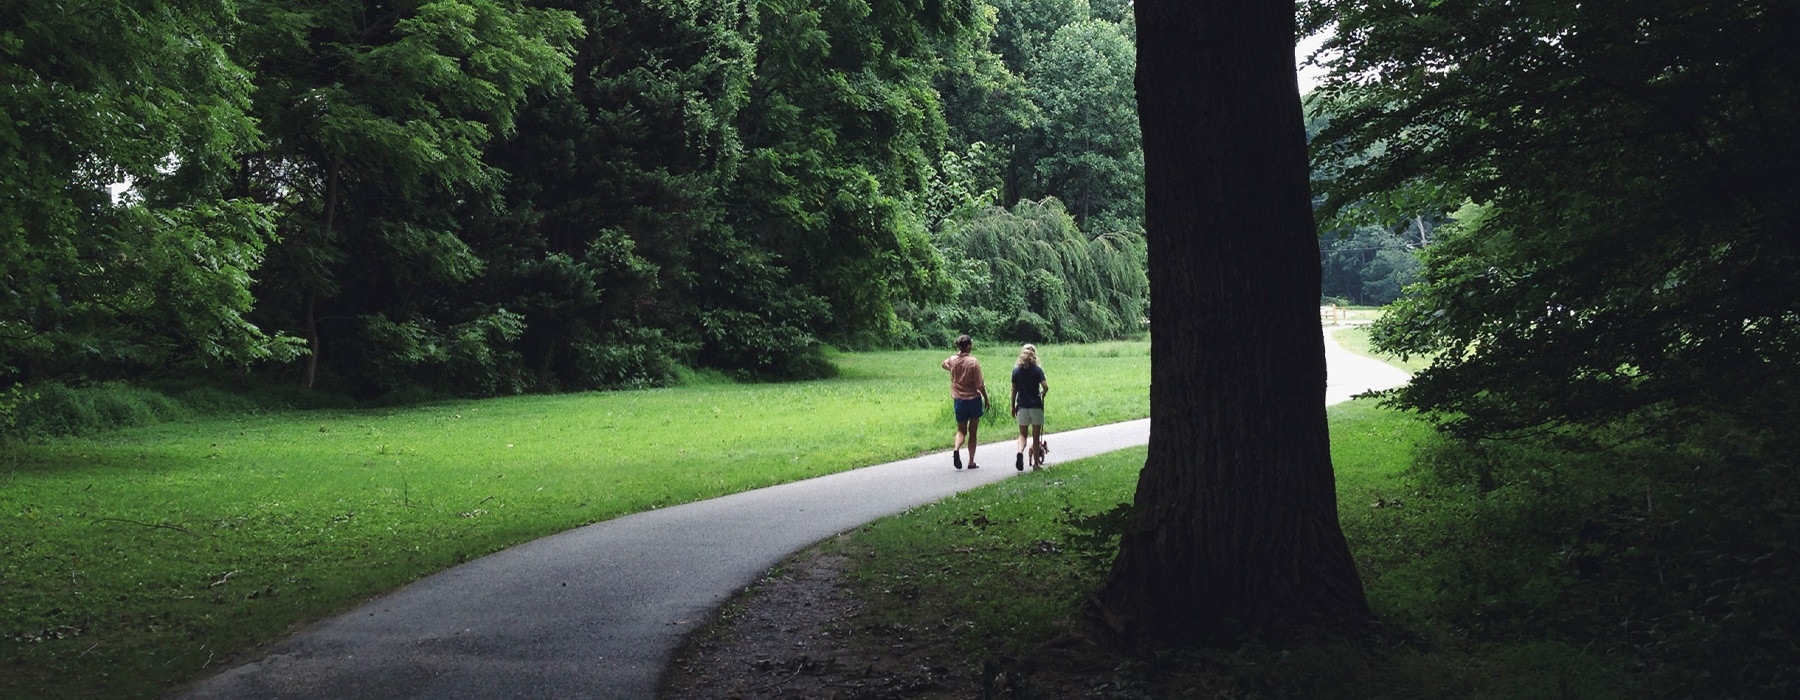 A couple walking down a path surrounded by lush green trees.